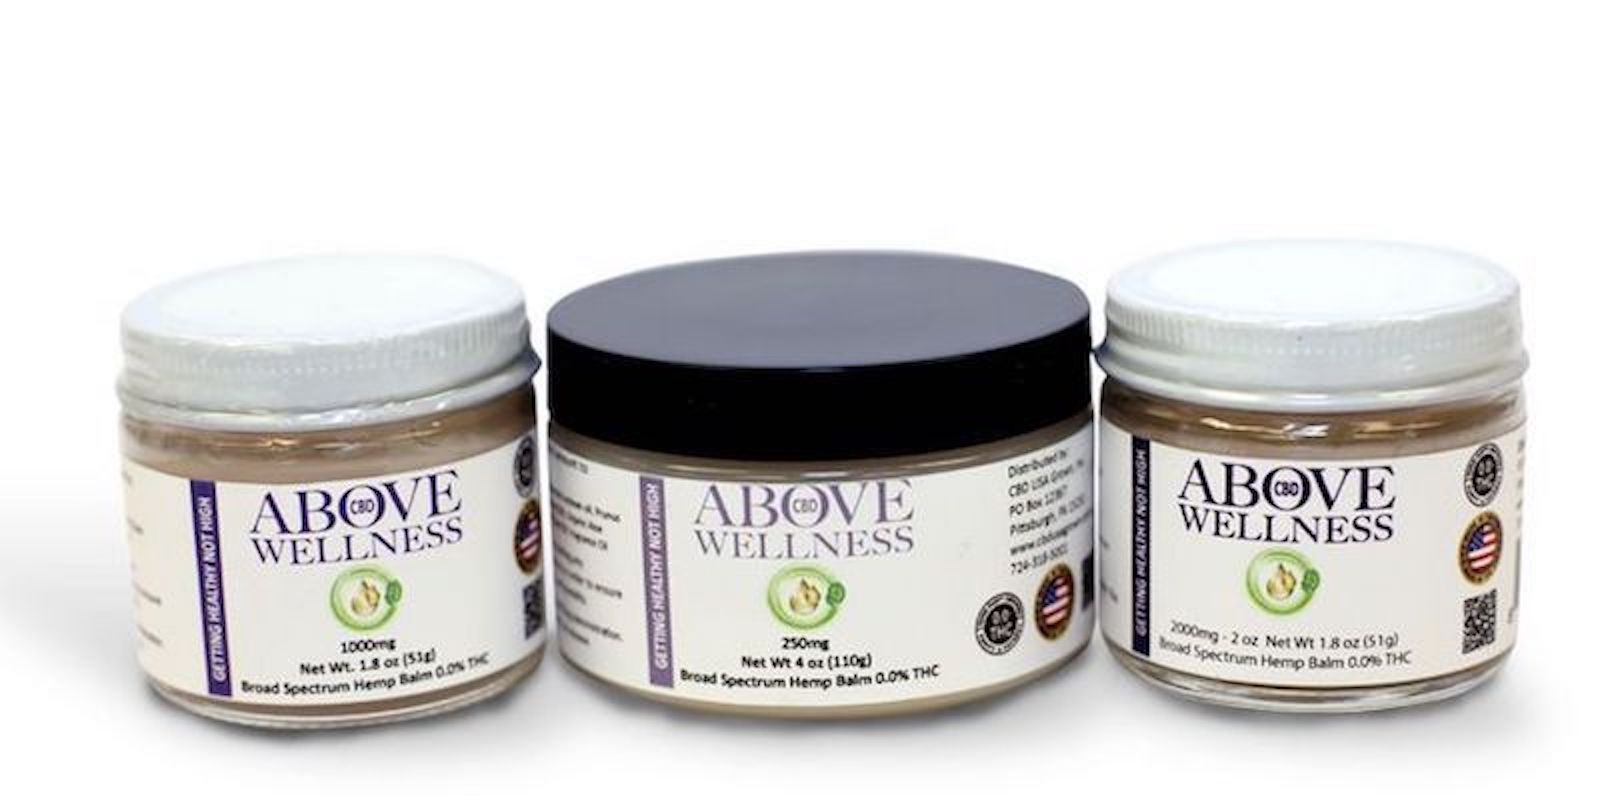 Above Wellness, 250mg Hemp Relief Balm (Black Lid)